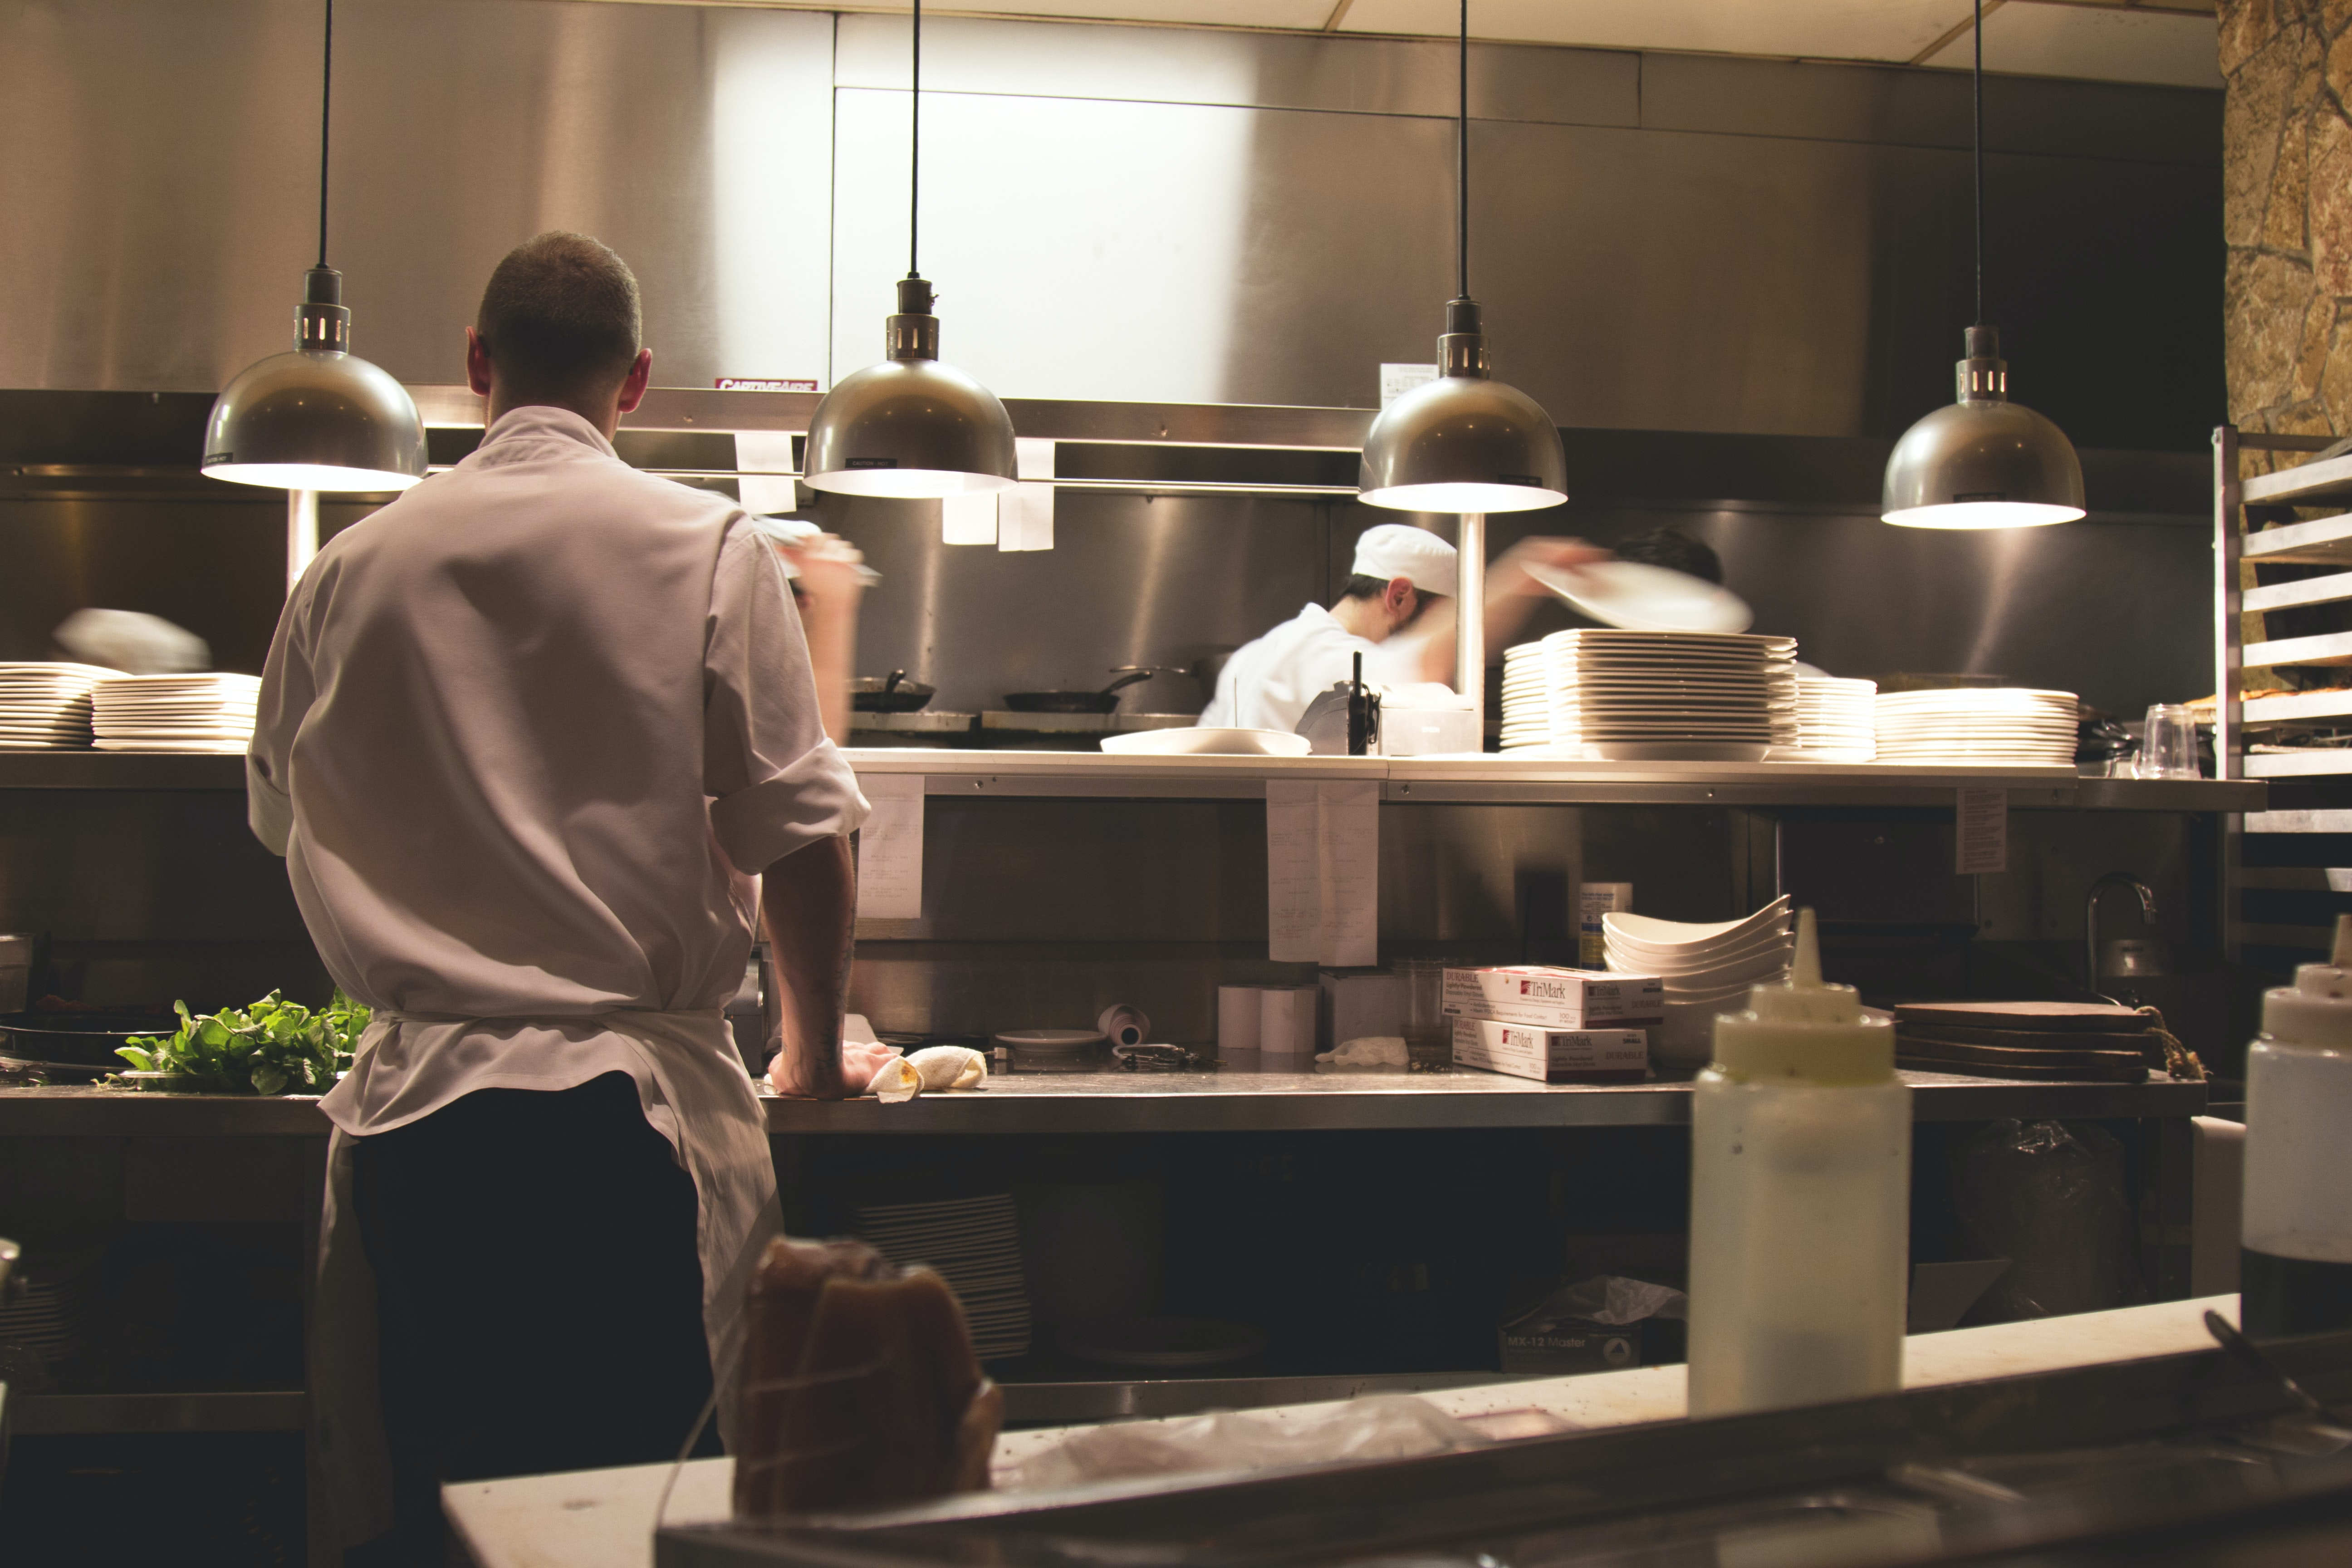 A chef preparing food in the kitchen of a restaurant